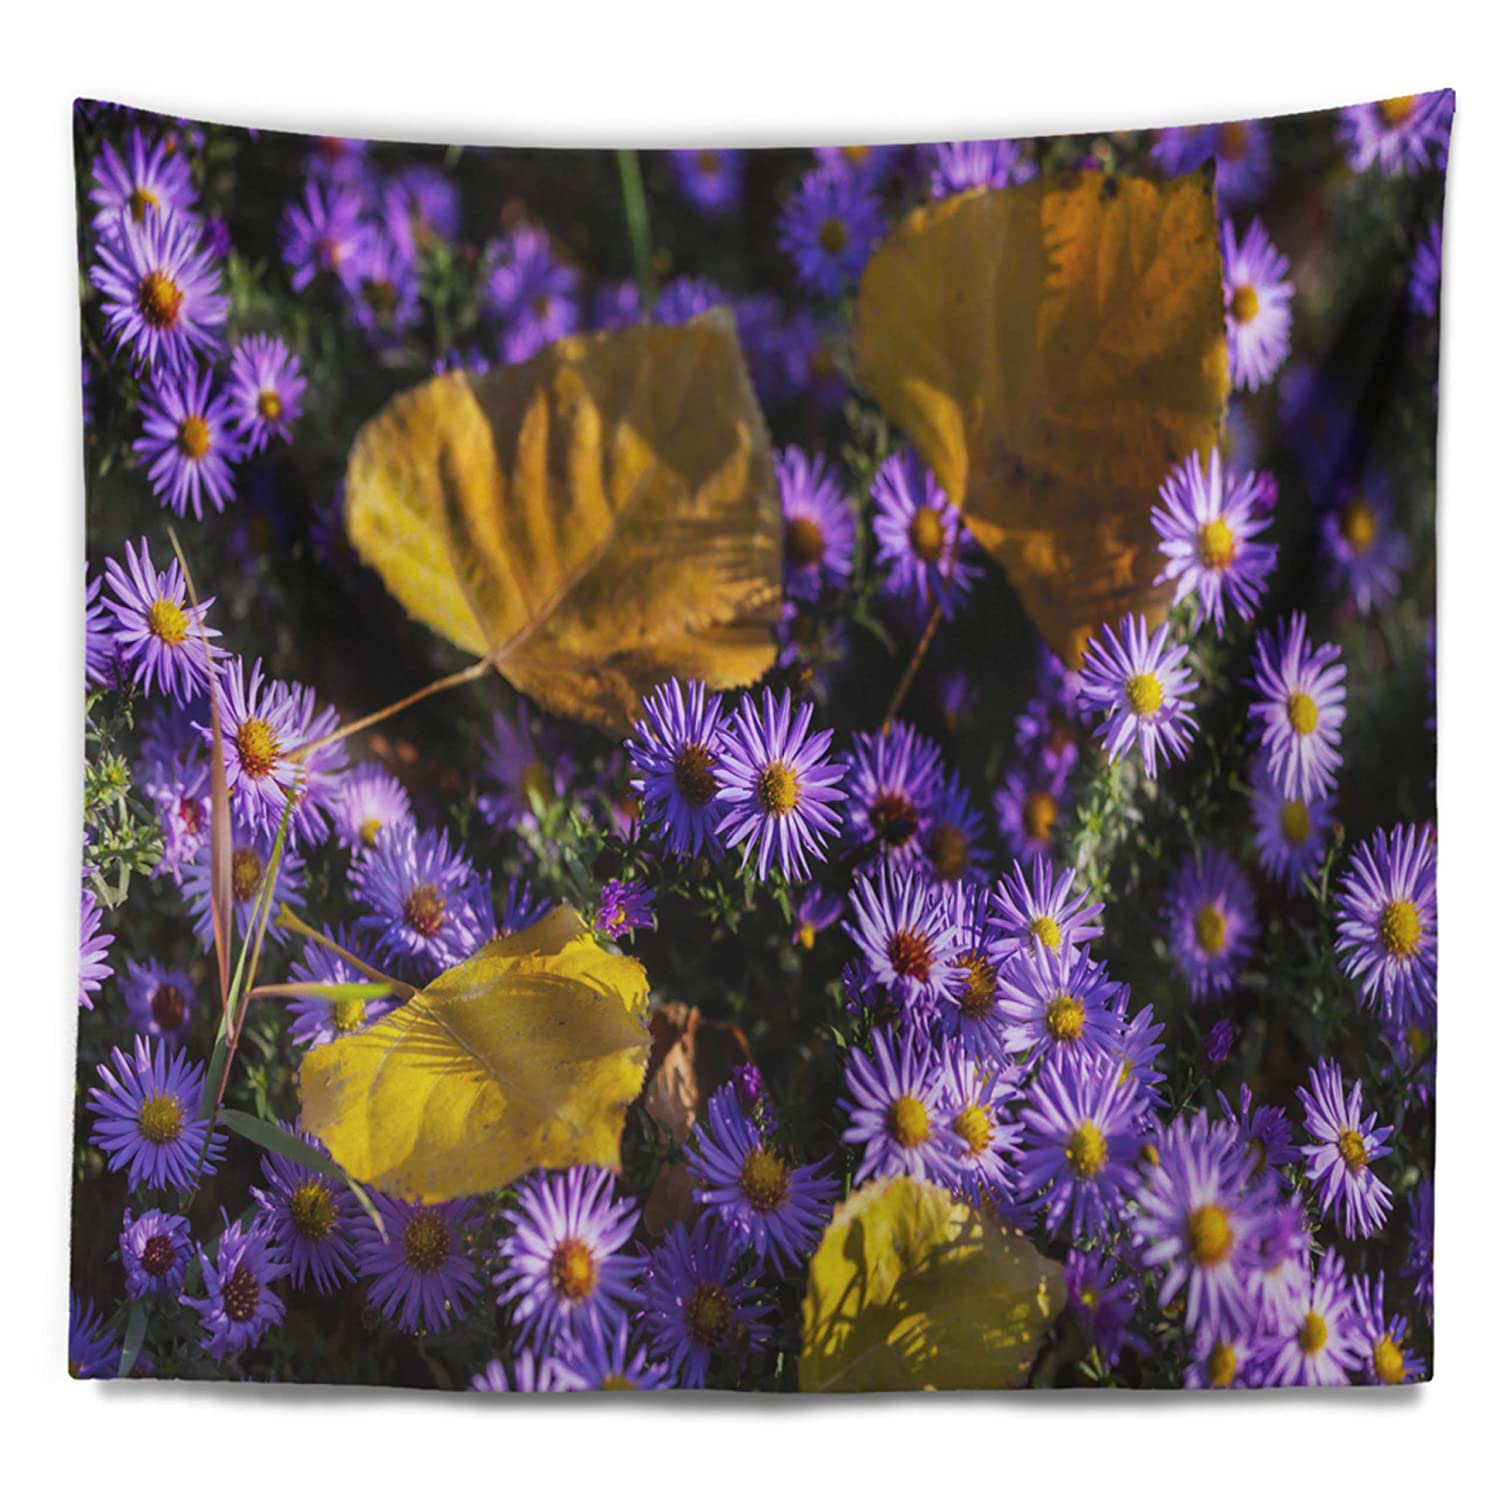 Created On Lightweight Polyester Fabric Designart TAP12592-39-32  Little Purple Flowers and Yellow Leaves Floral Blanket D/écor Art for Home and Office Wall Tapestry Medium x 32 in 39 in